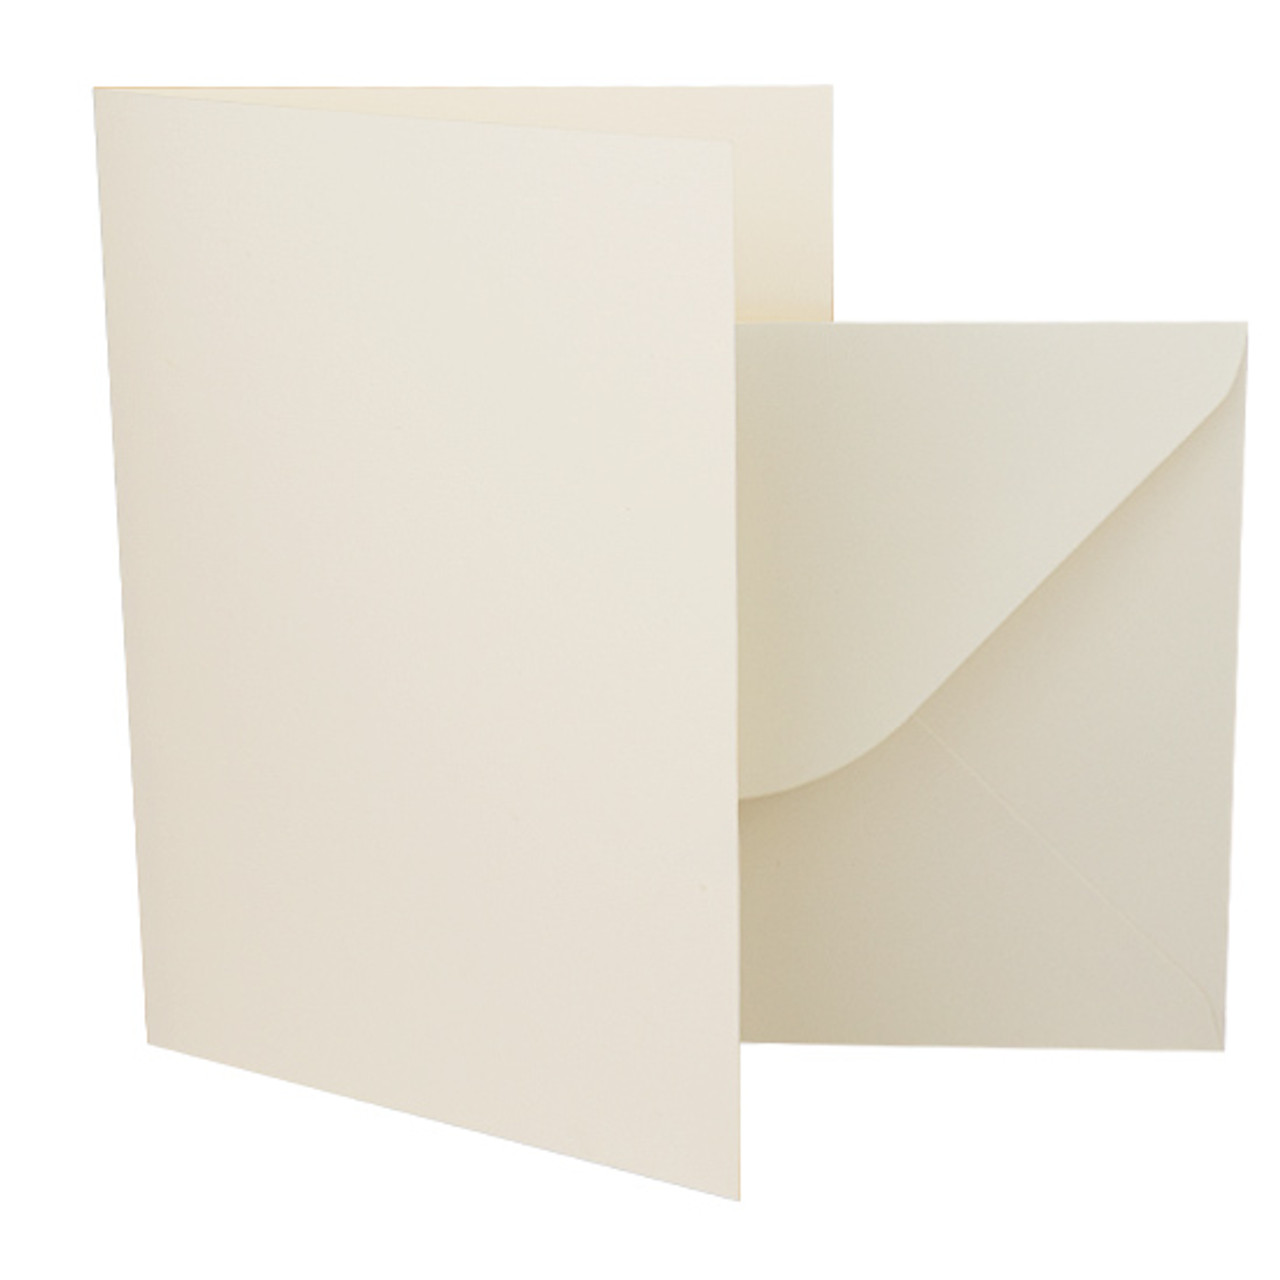 50 x Ivory A5//C5 Card Blanks and Envelopes